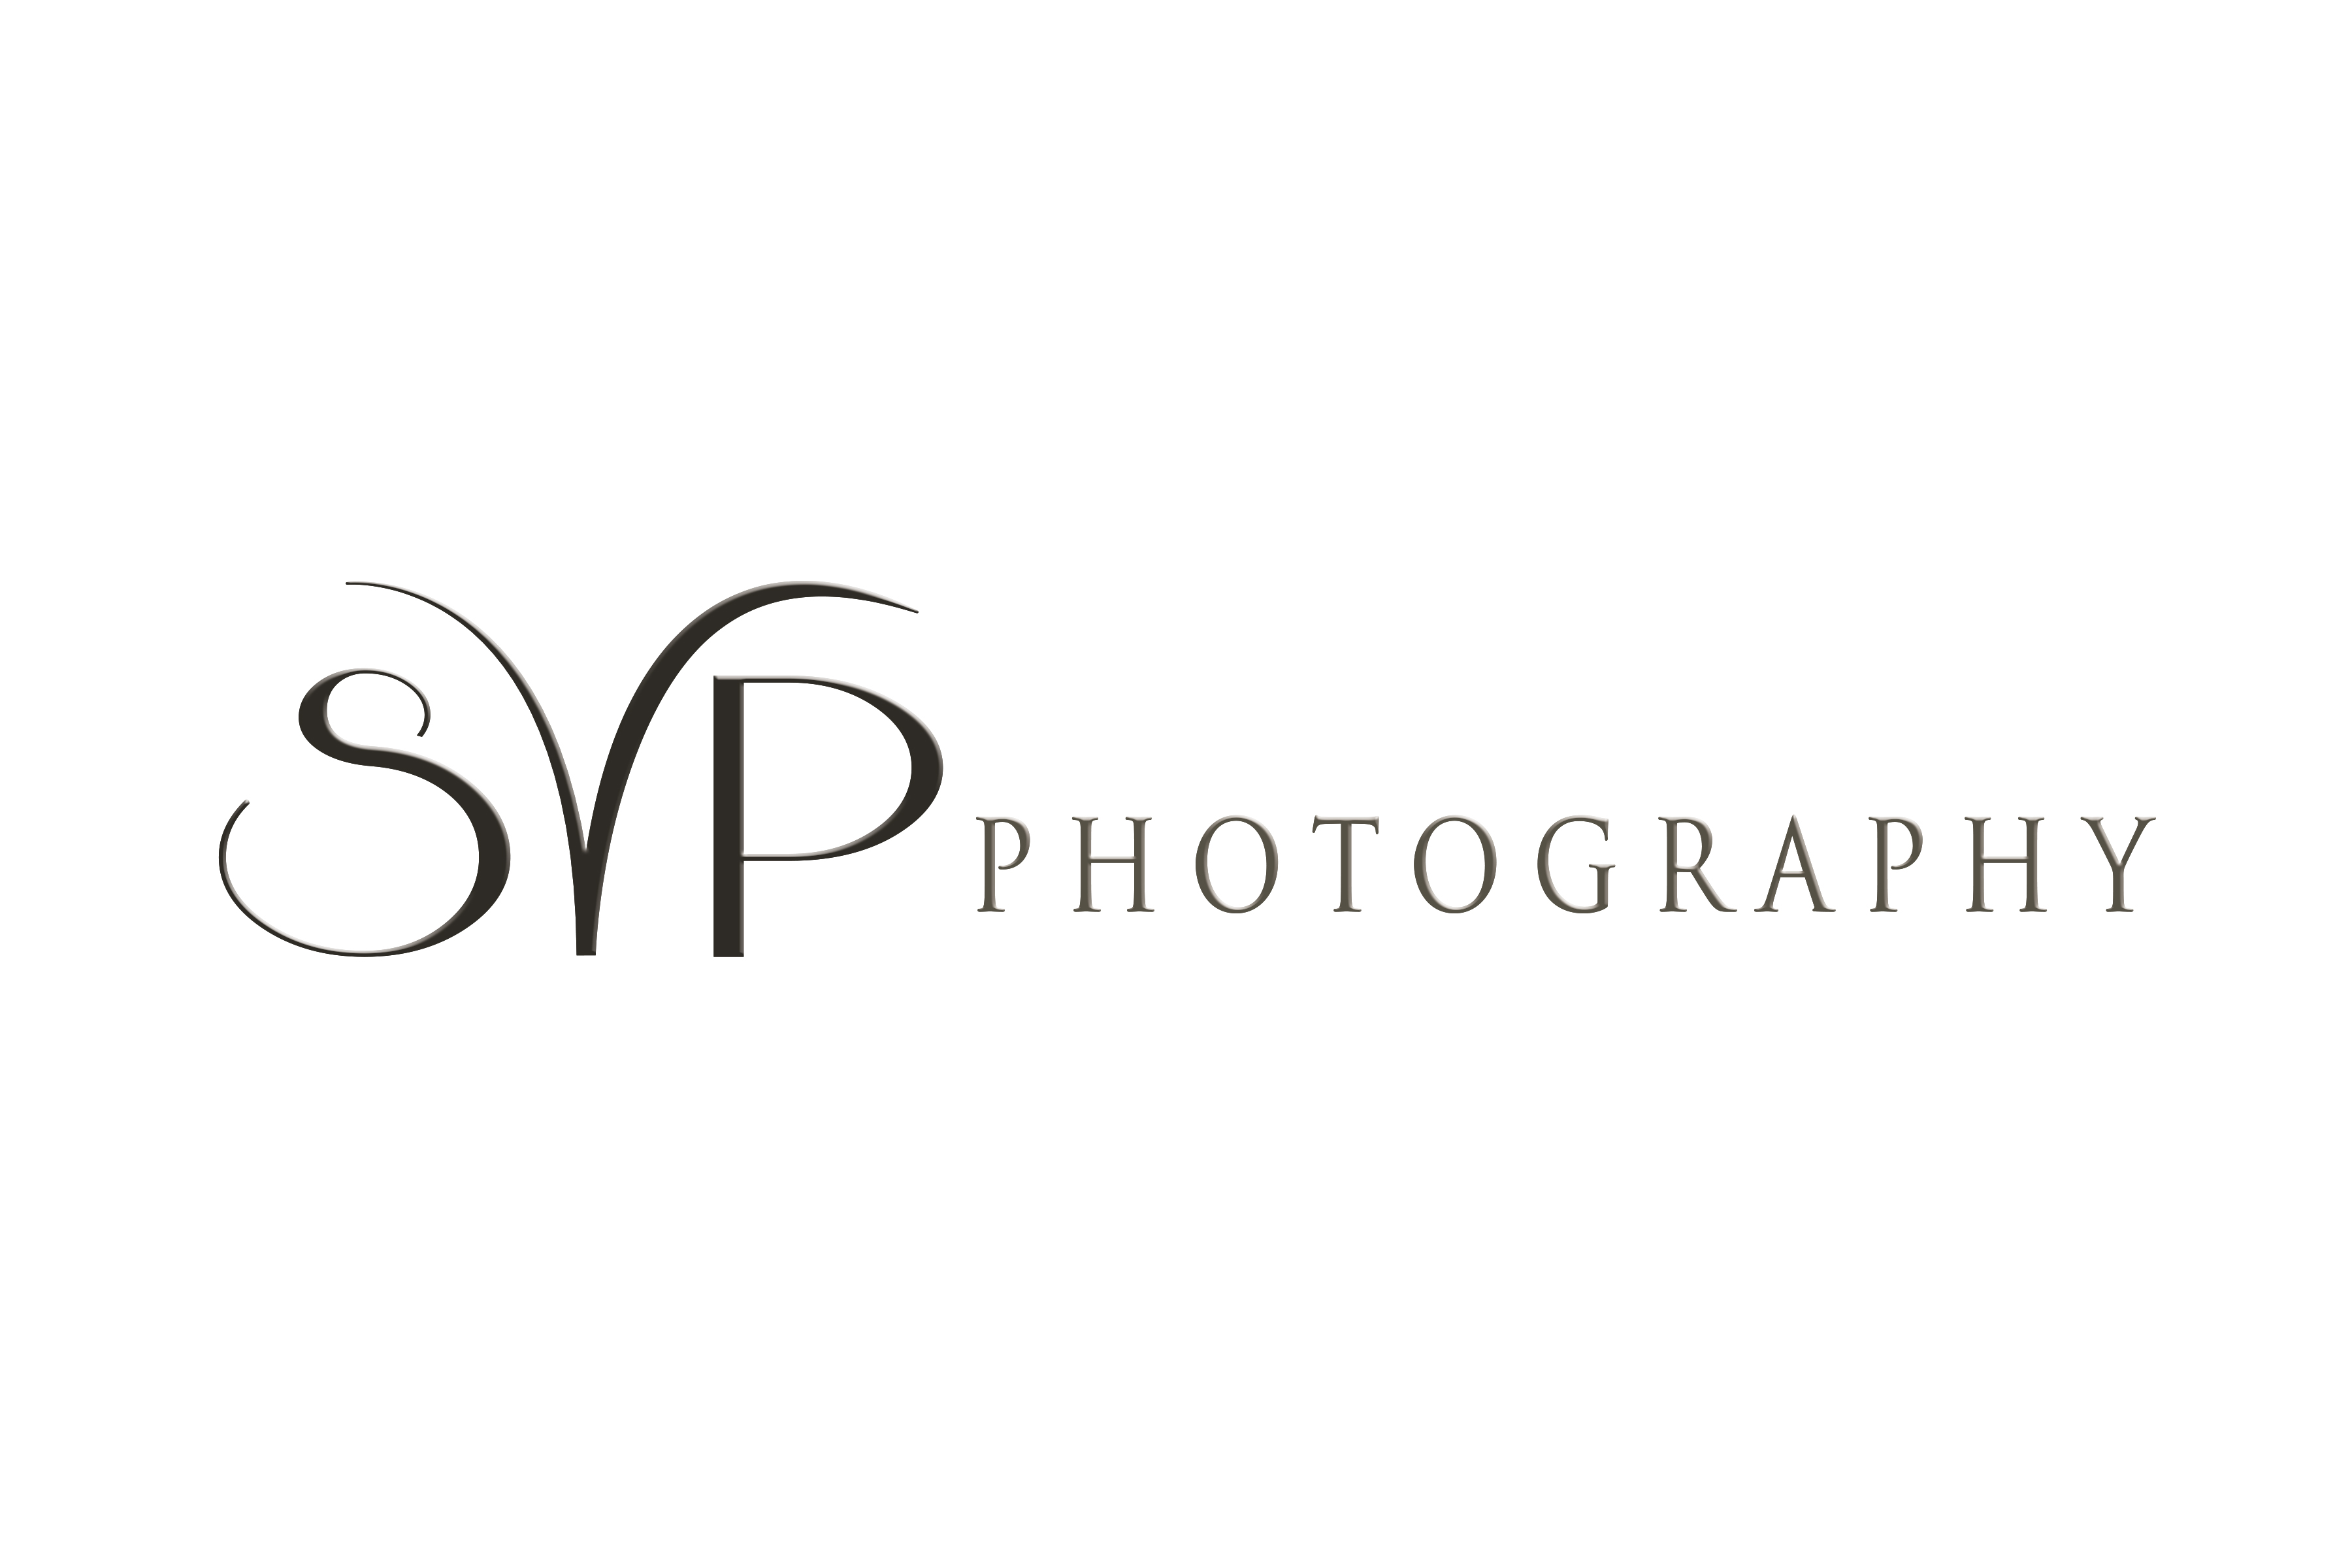 SVP PHOTOGRAPHY - THE ART OF A WOMAN